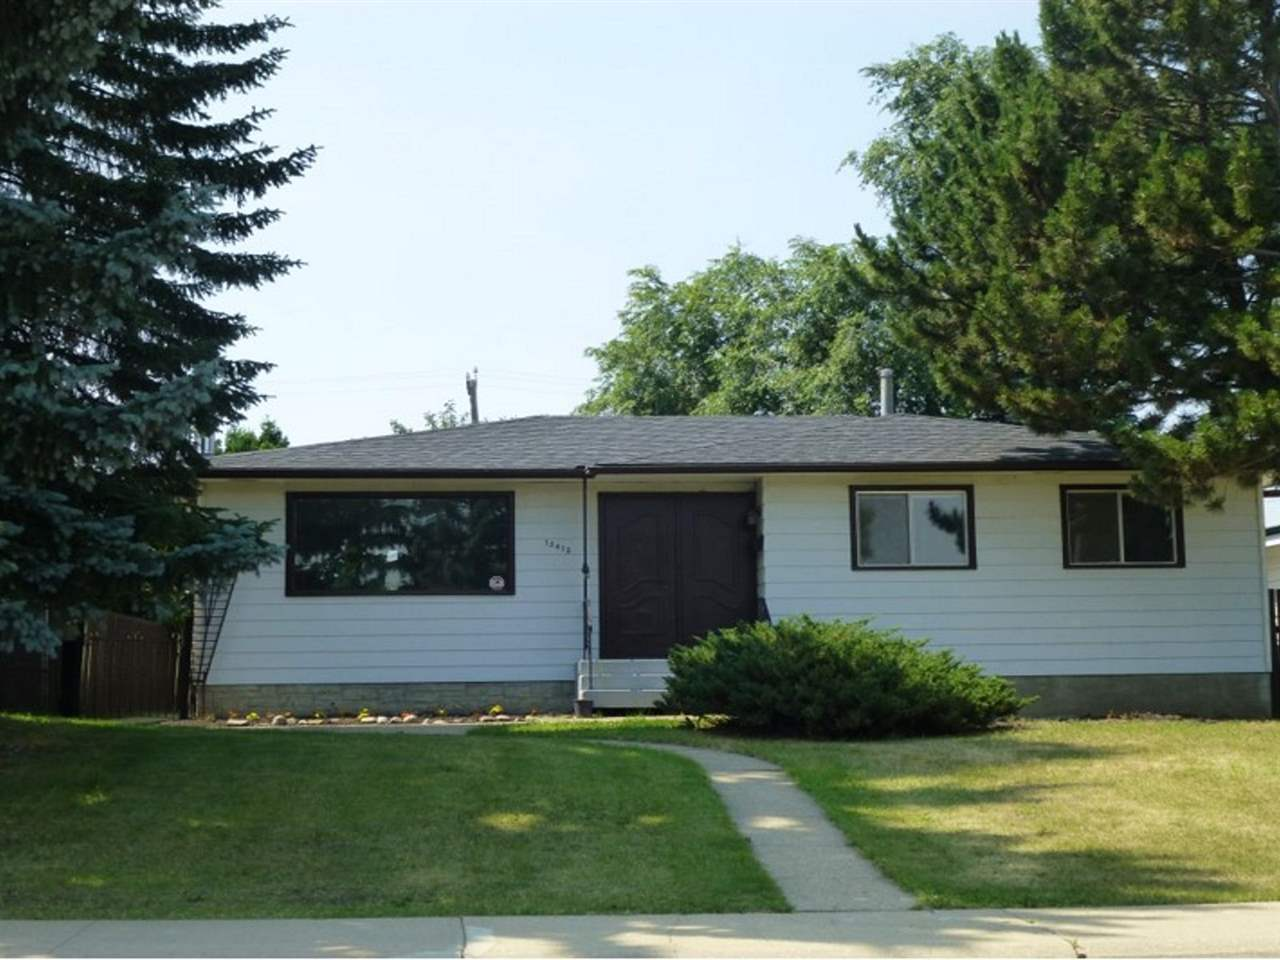 Main Photo: 13412 57 Street in Edmonton: Zone 02 House for sale : MLS® # E4056948